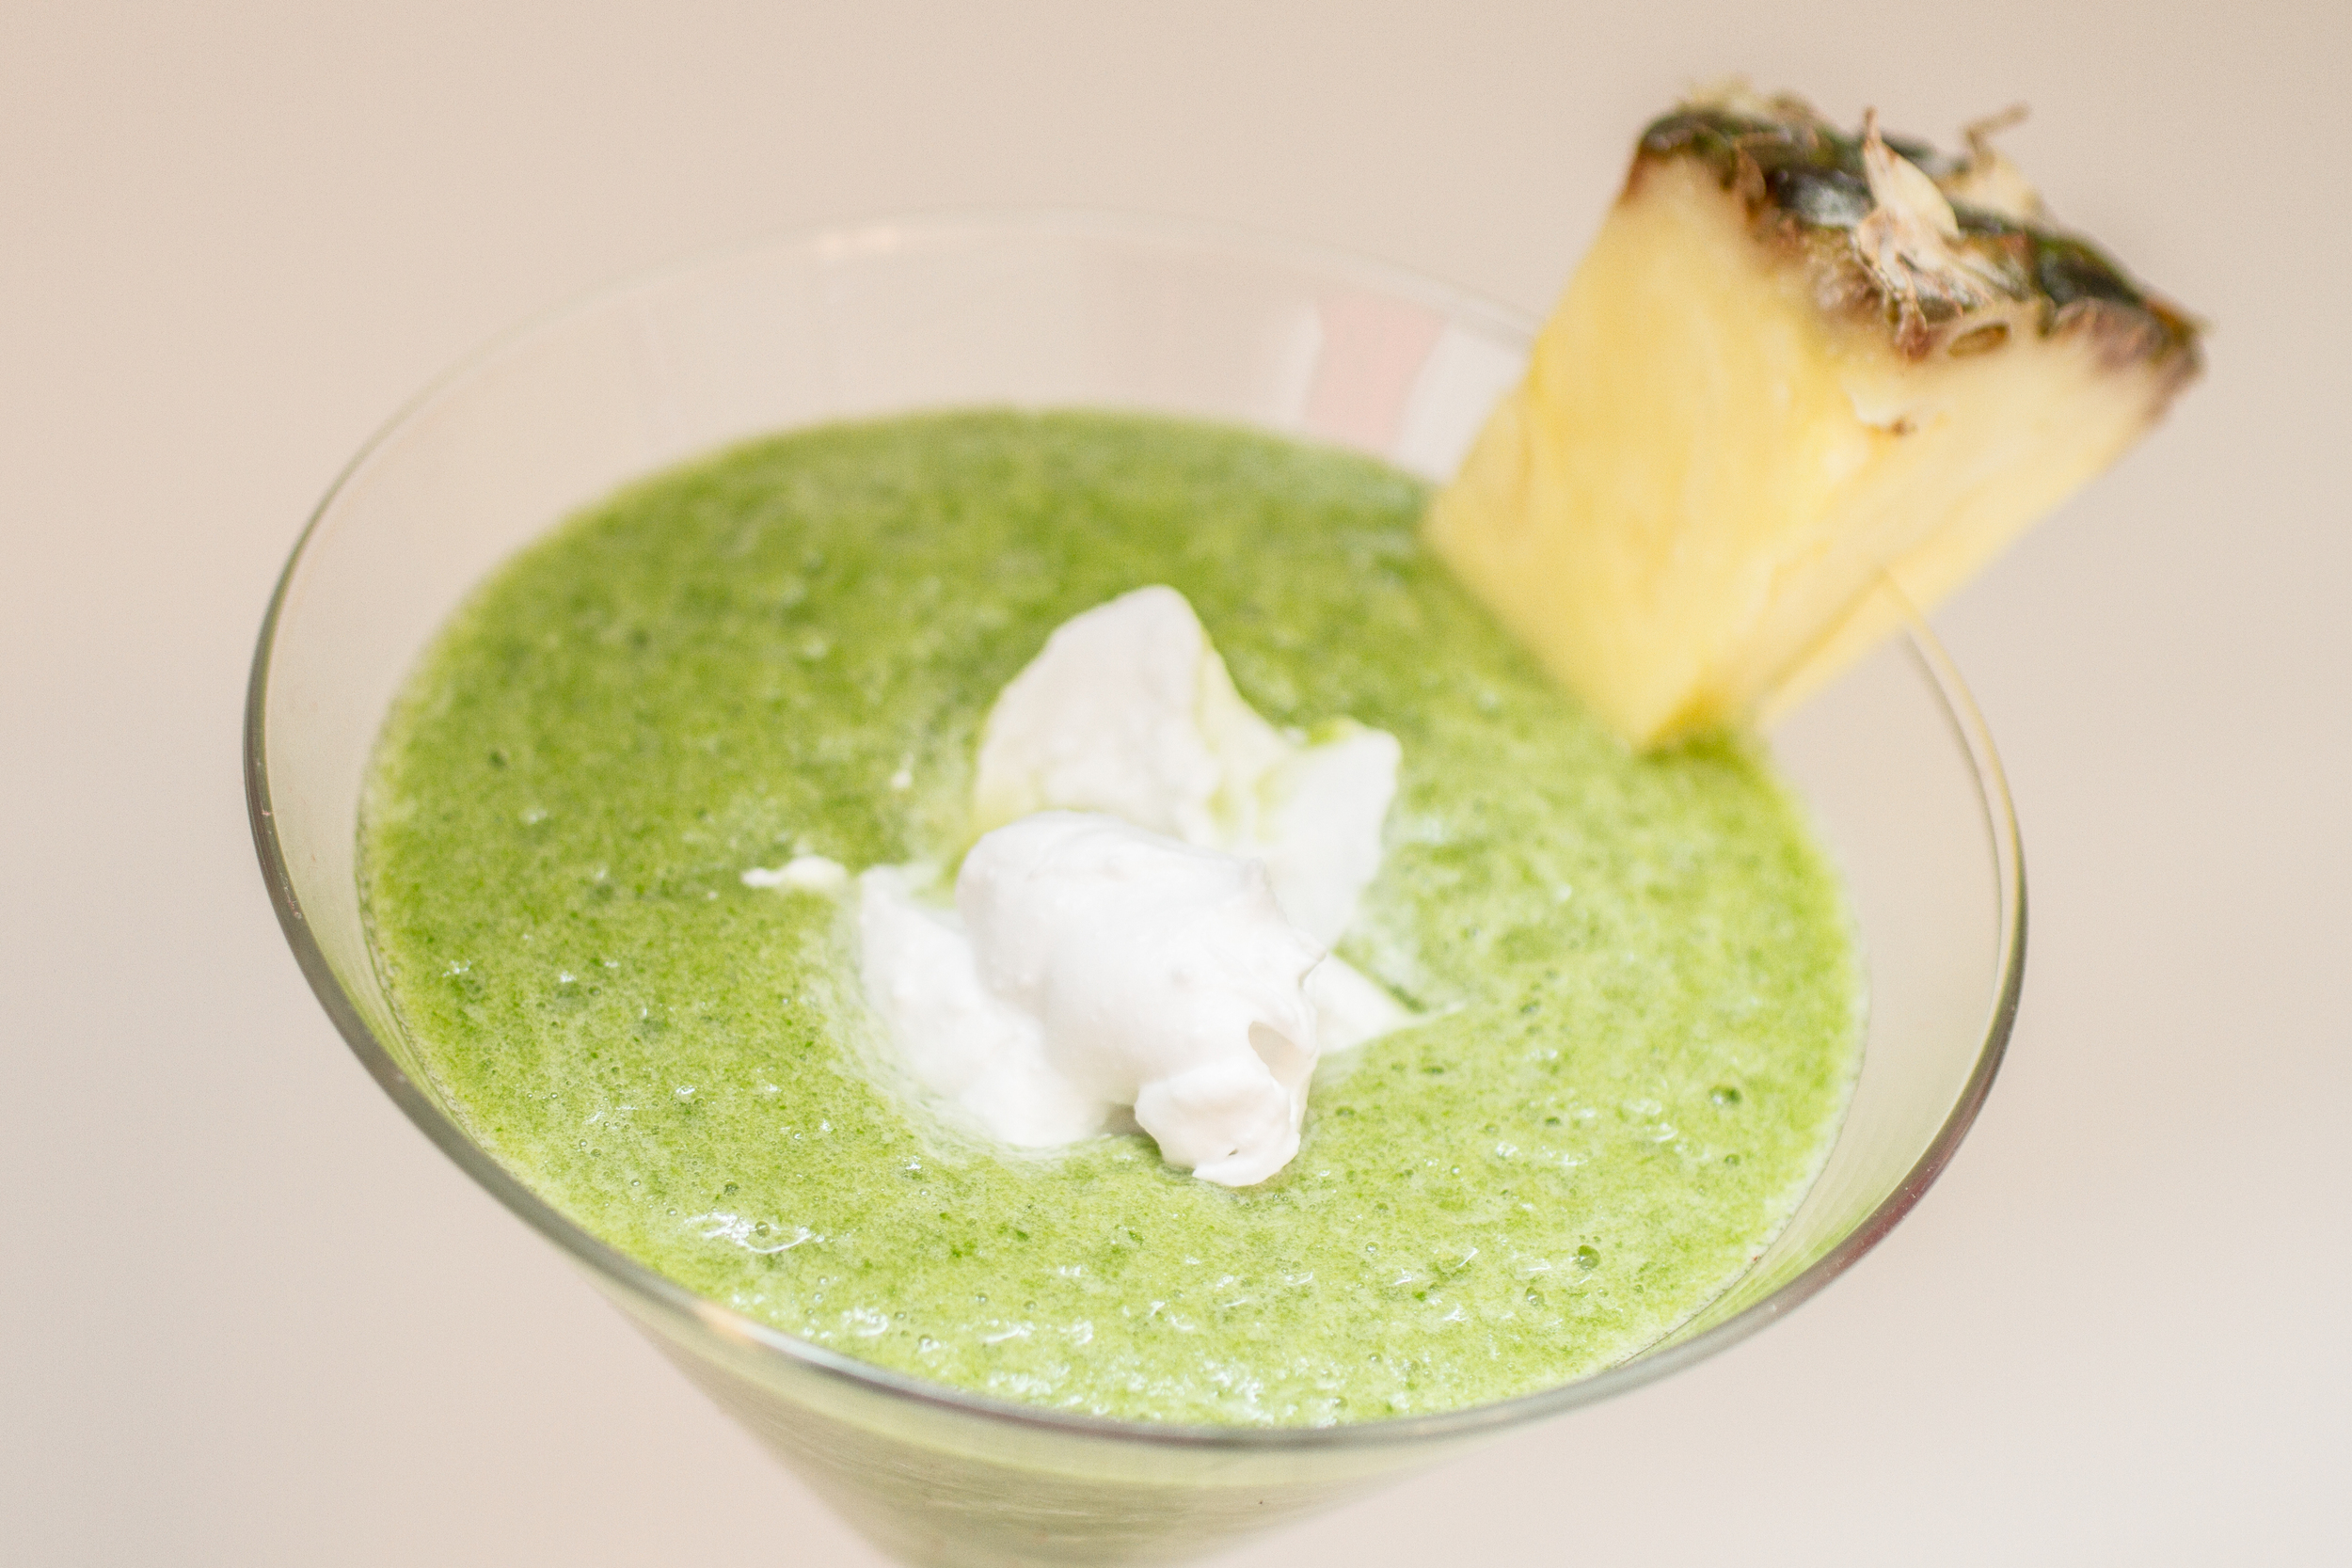 Green Pina Colada Smoothie made with Cafe' Luxe stainless steel made with Cafe' Luxe best milk frother and foam maker